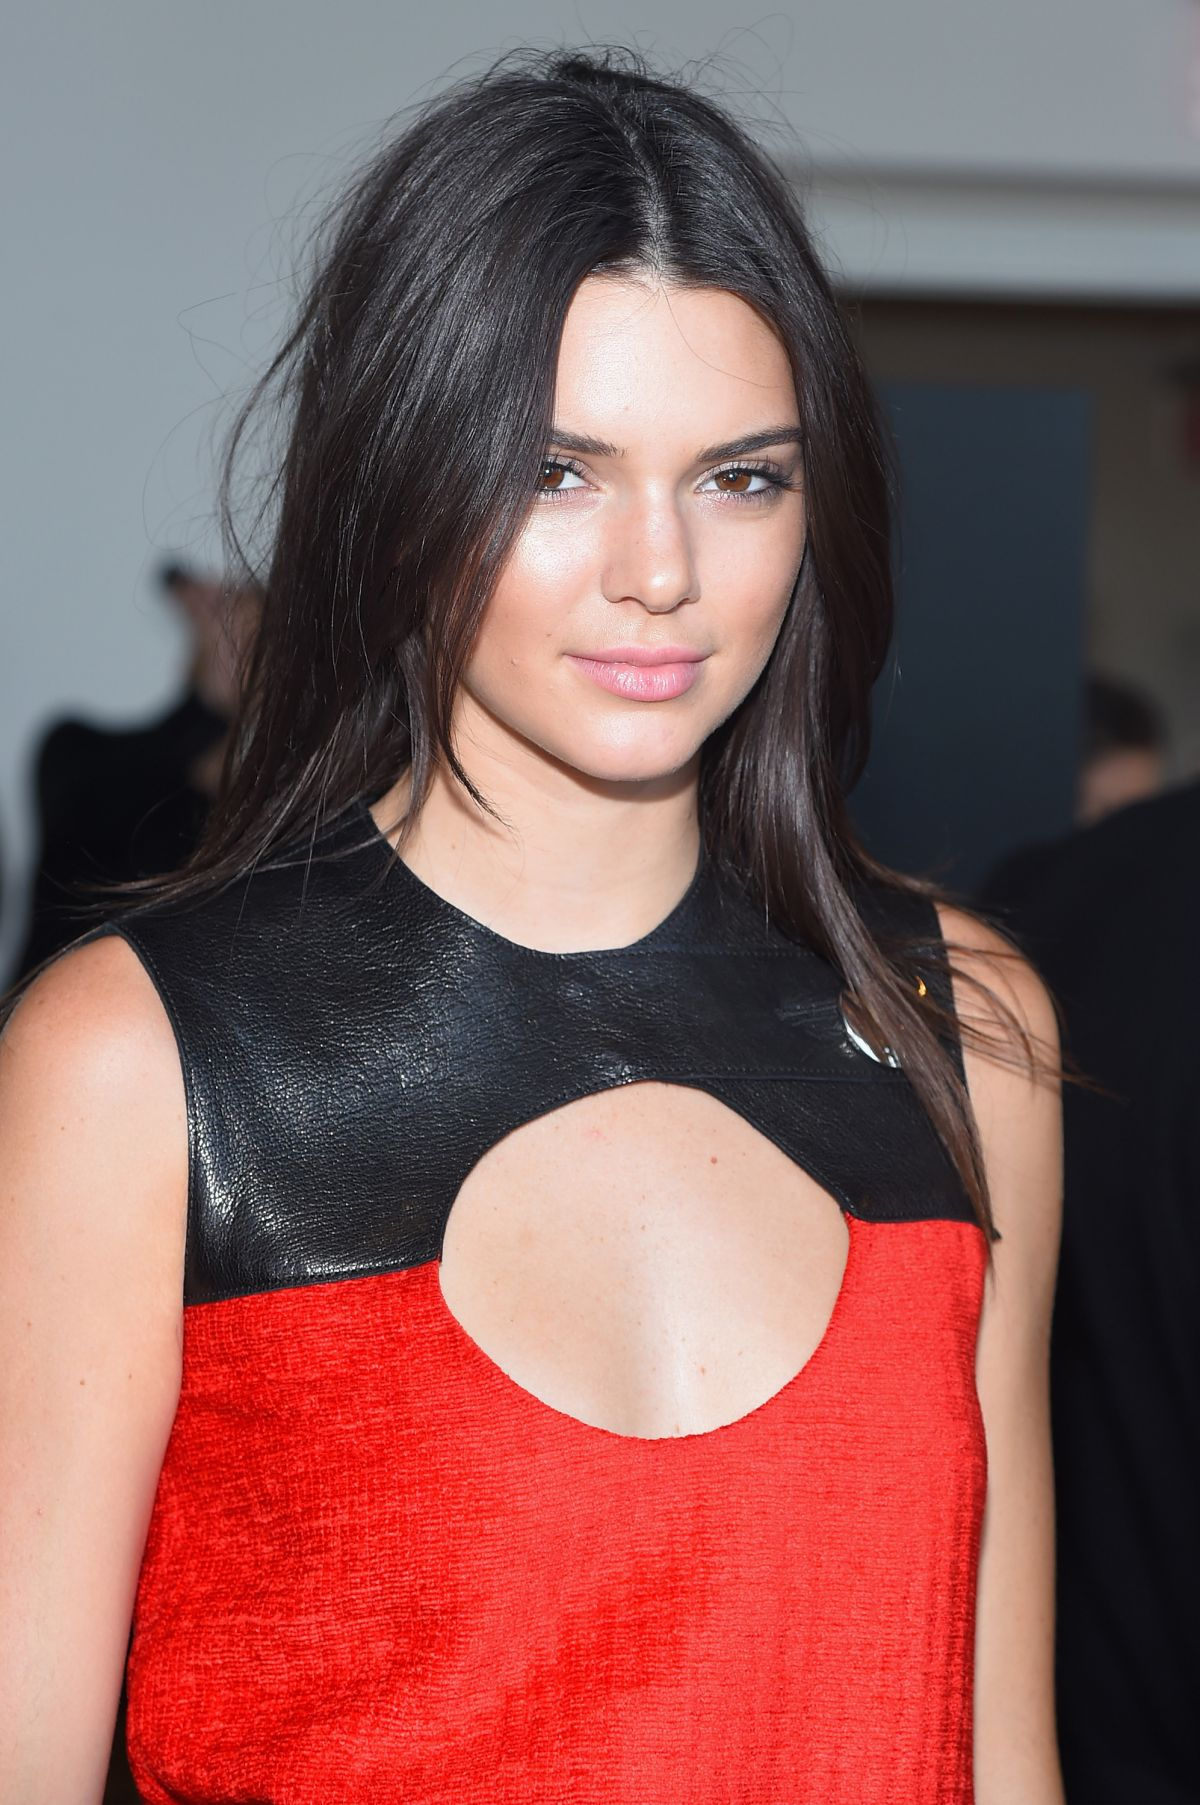 Kendall Jenner Caviar Kaspia Dinner After Pharmacy Stop: KENDALL JENNER At Calvin Kklein Fashion Show At NYFW 09/17